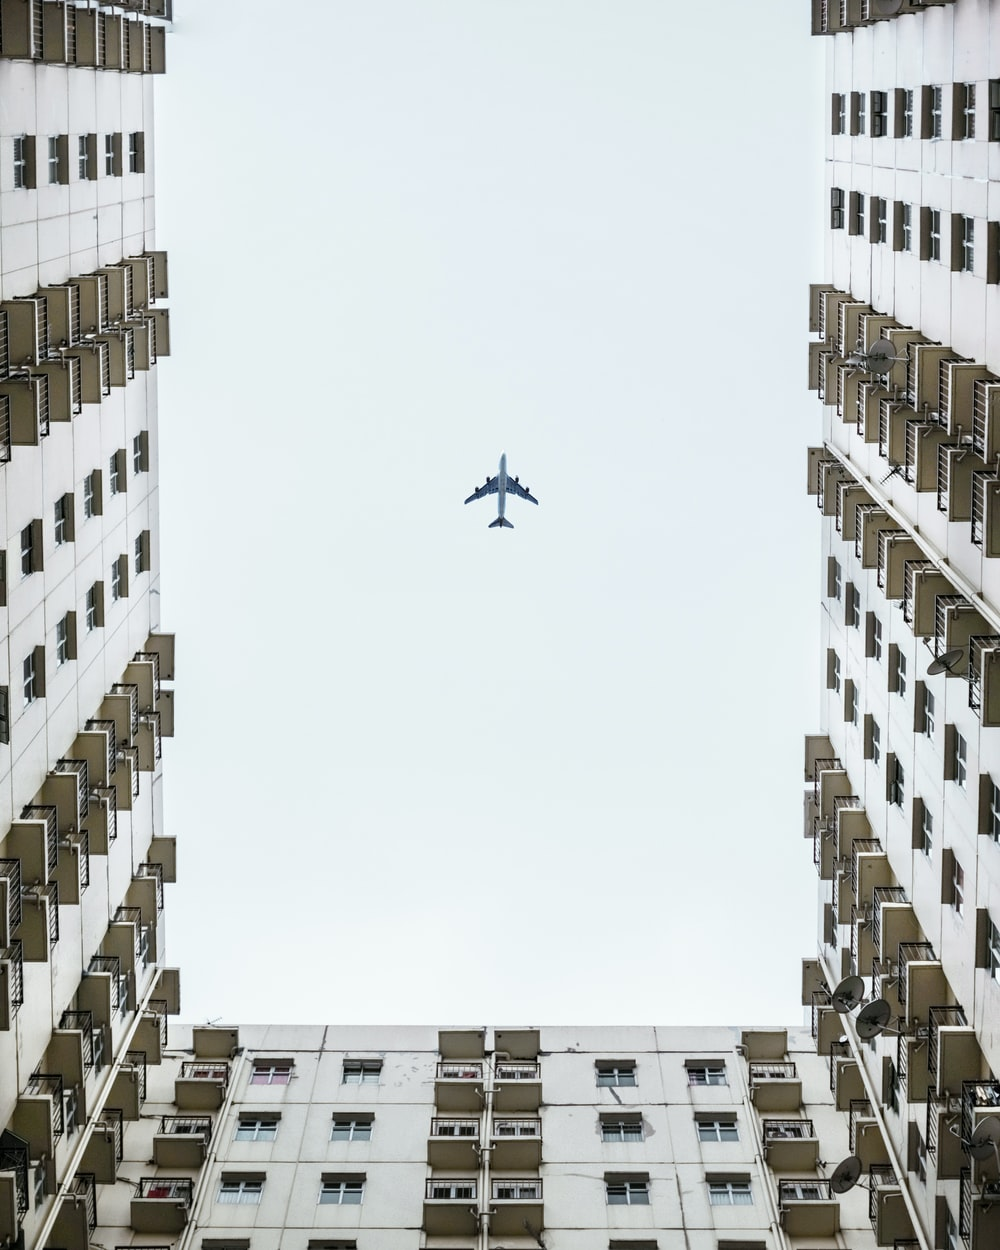 Best 20 Airplane Pictures Hd Download Free Images On Unsplash Ladaku 4g Bottom View Airline